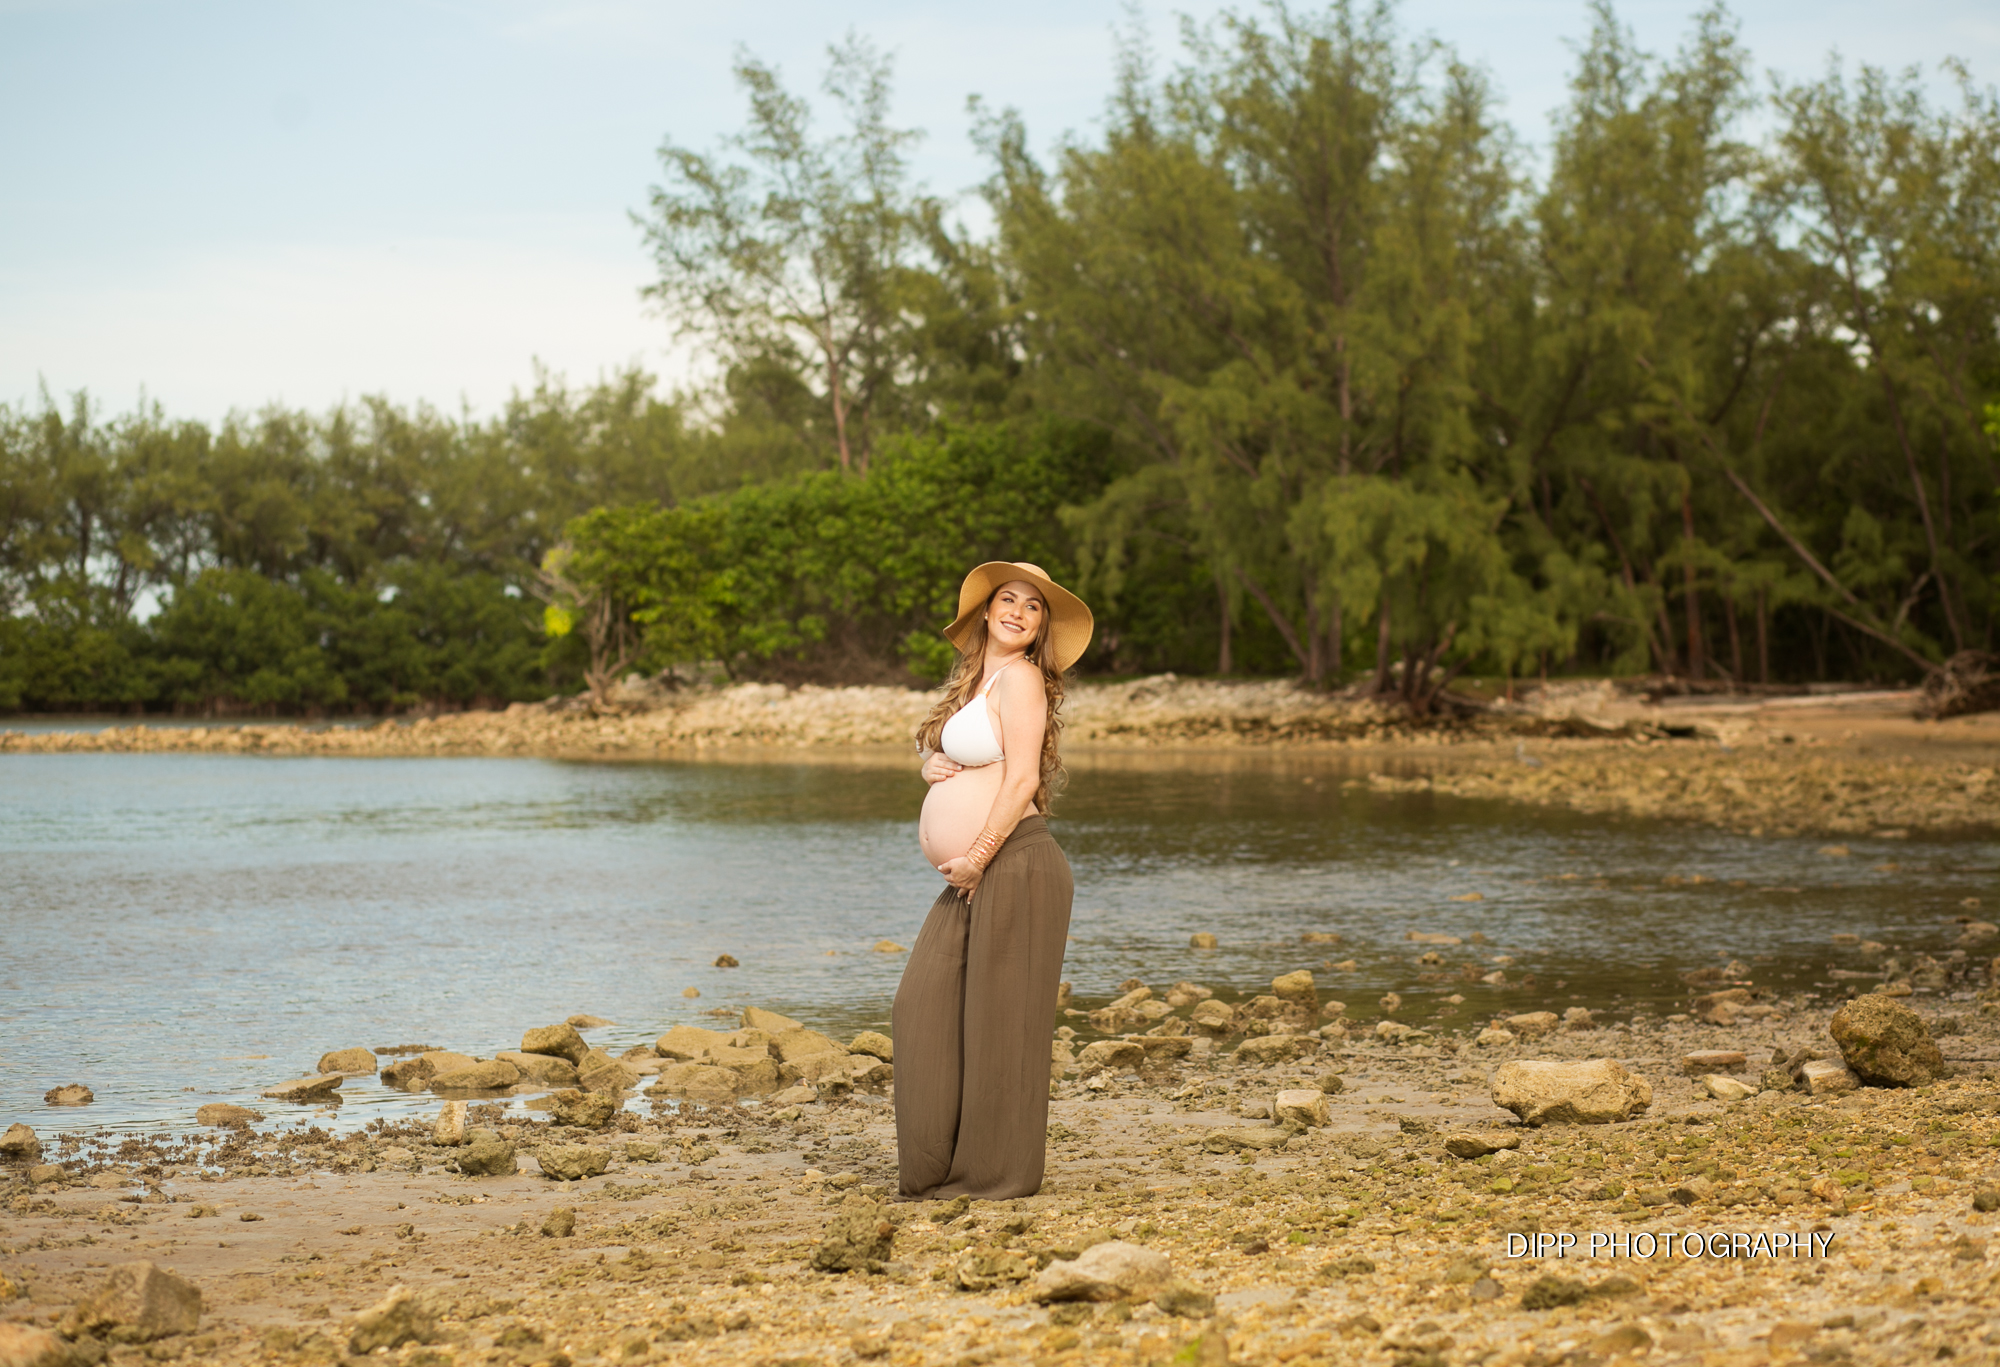 Dipp_2016 Lauren Rego MATERNITY-219-Edit